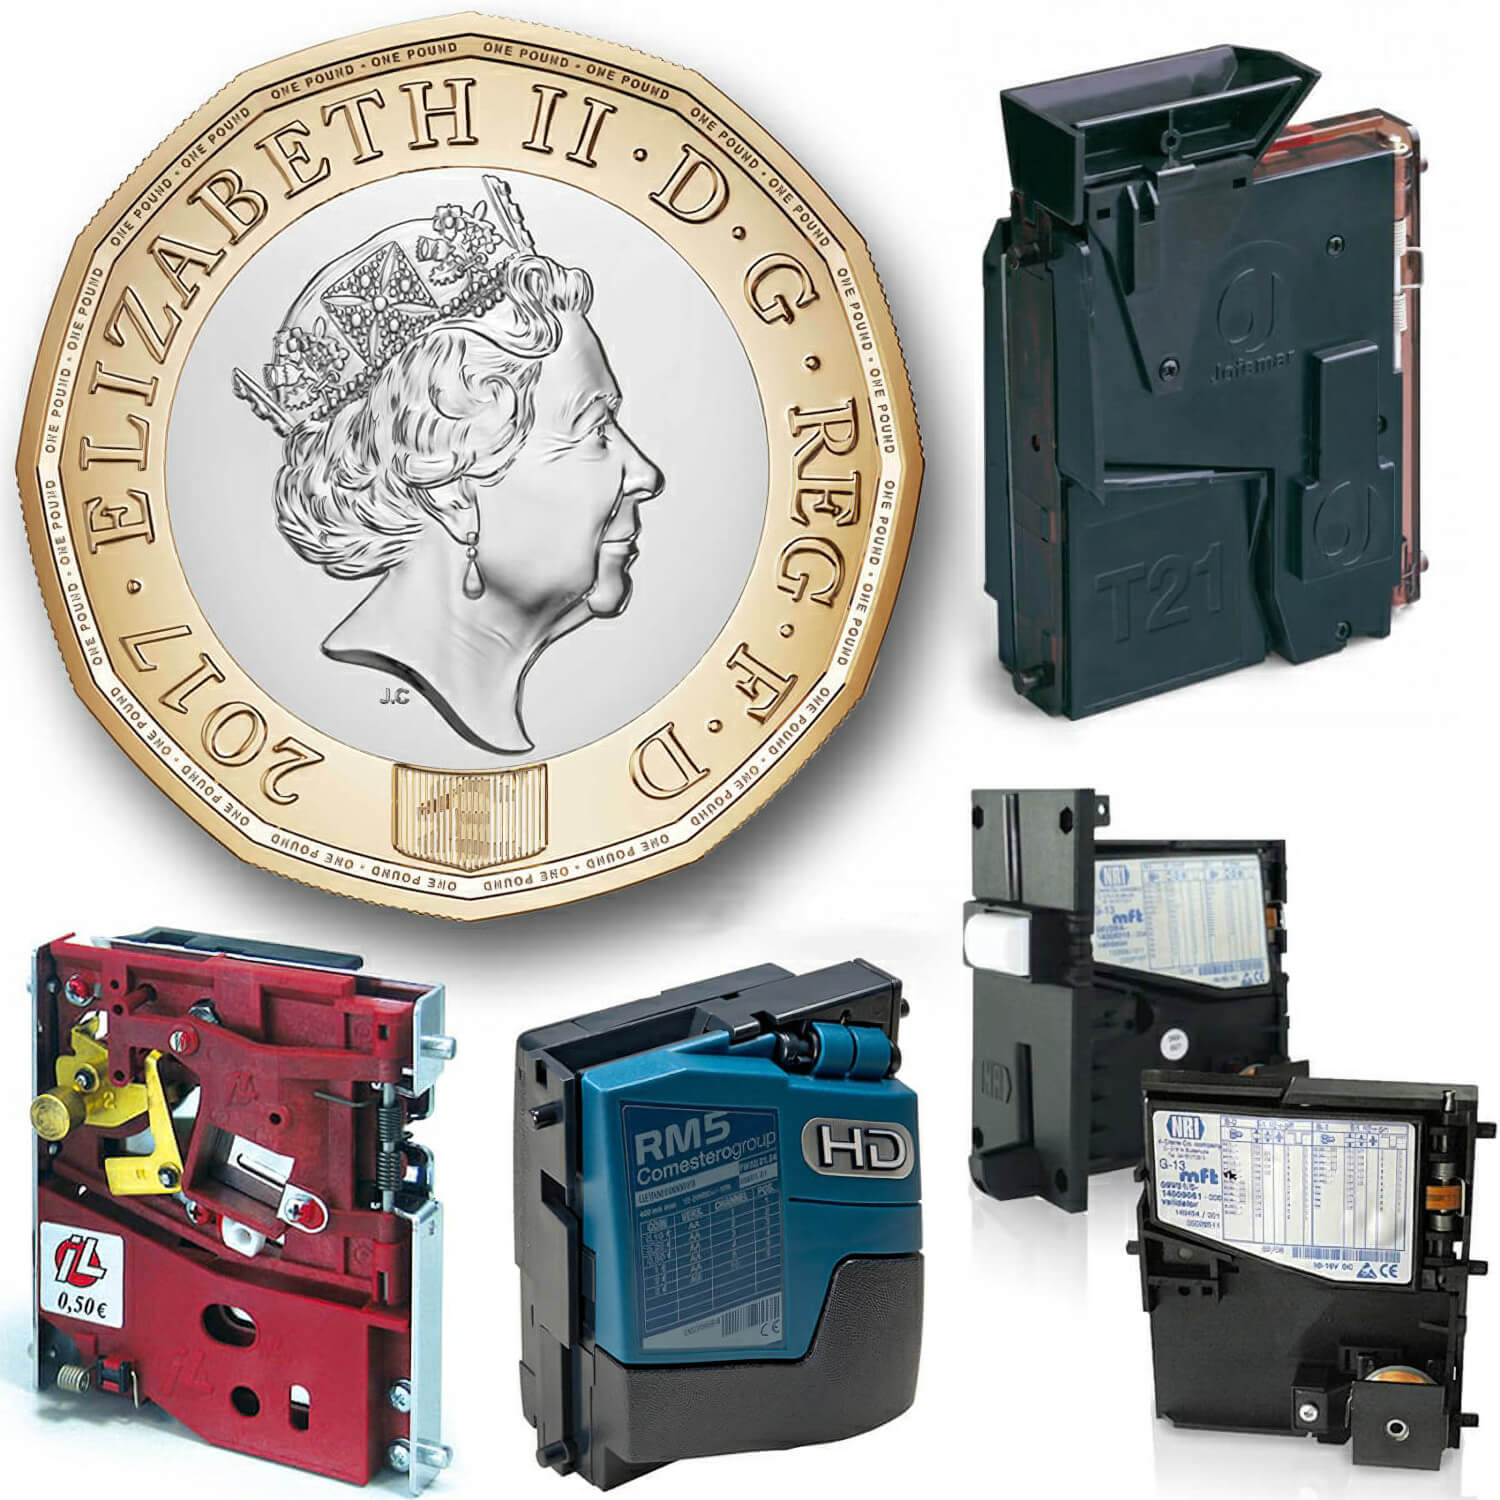 Is Your Coin Mech Ready for the New Pound Coin? - Liberty